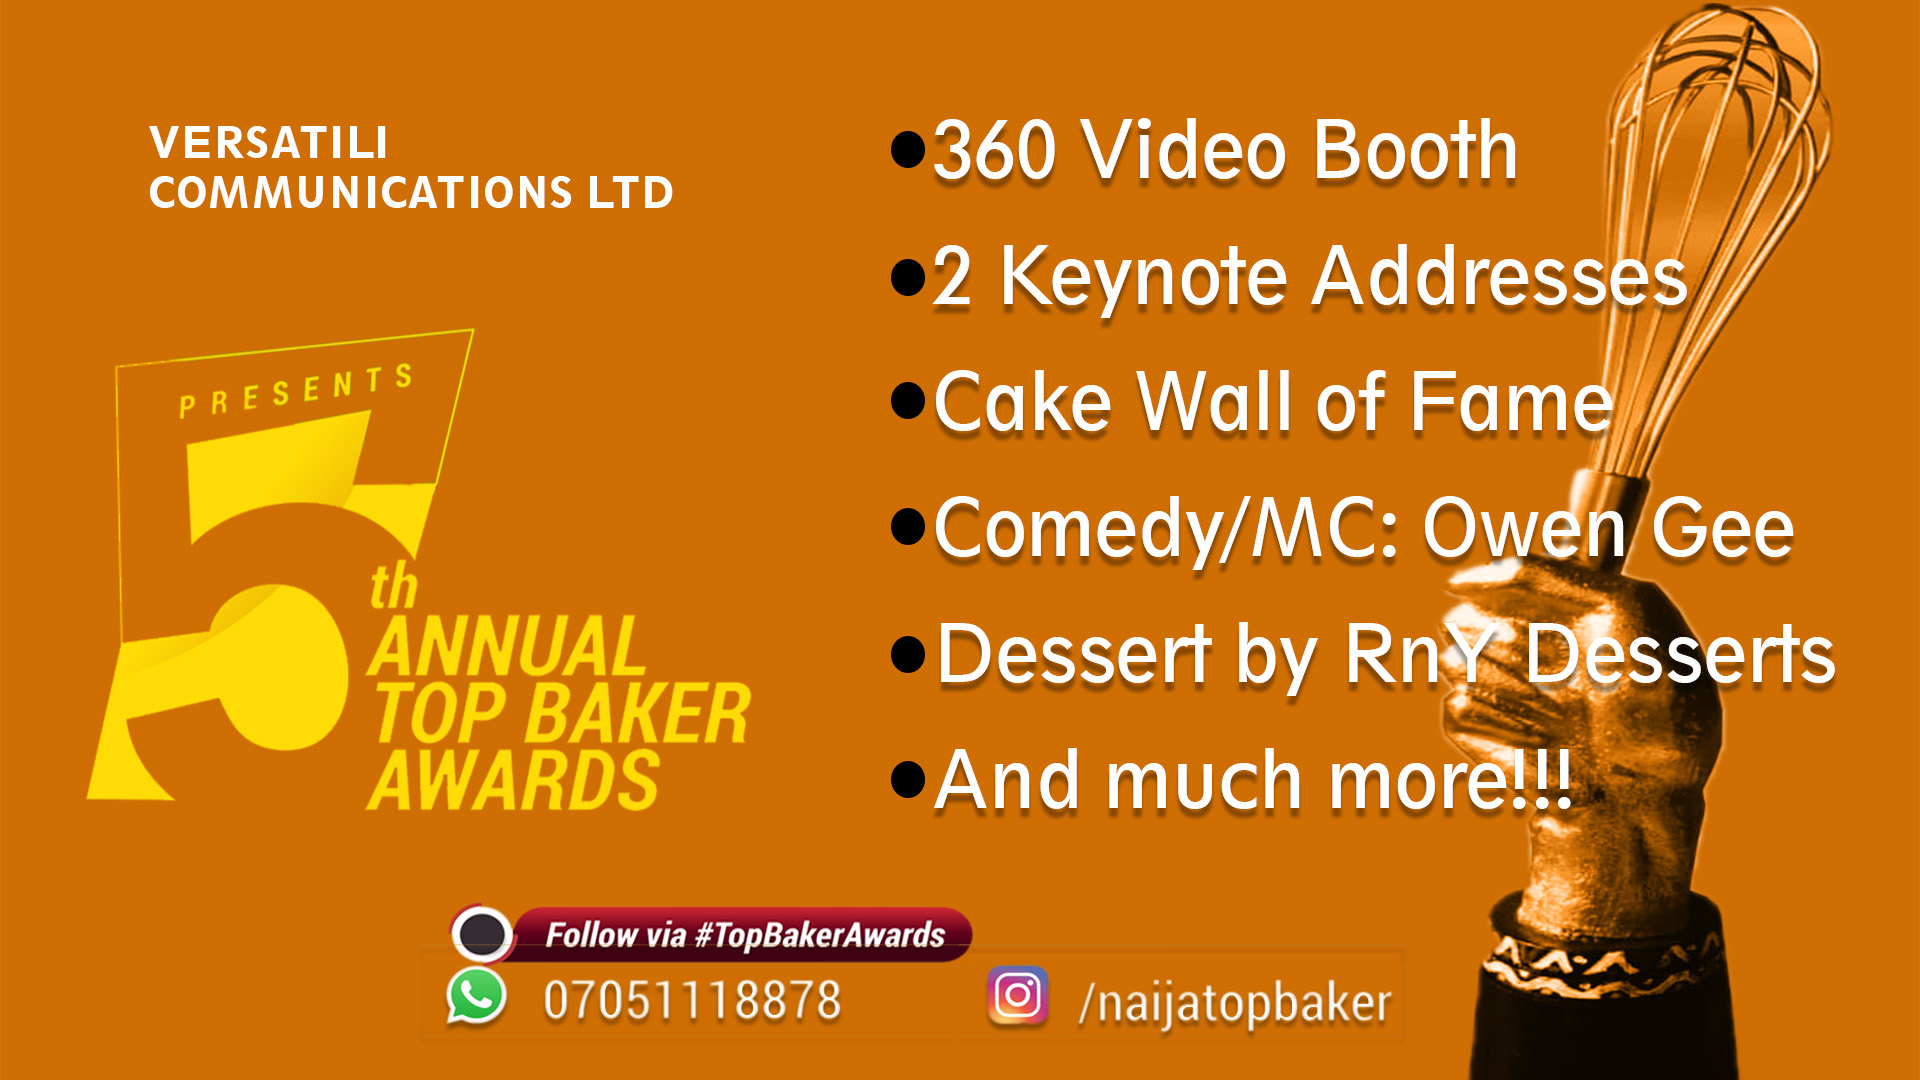 Top Baker Awards 2019